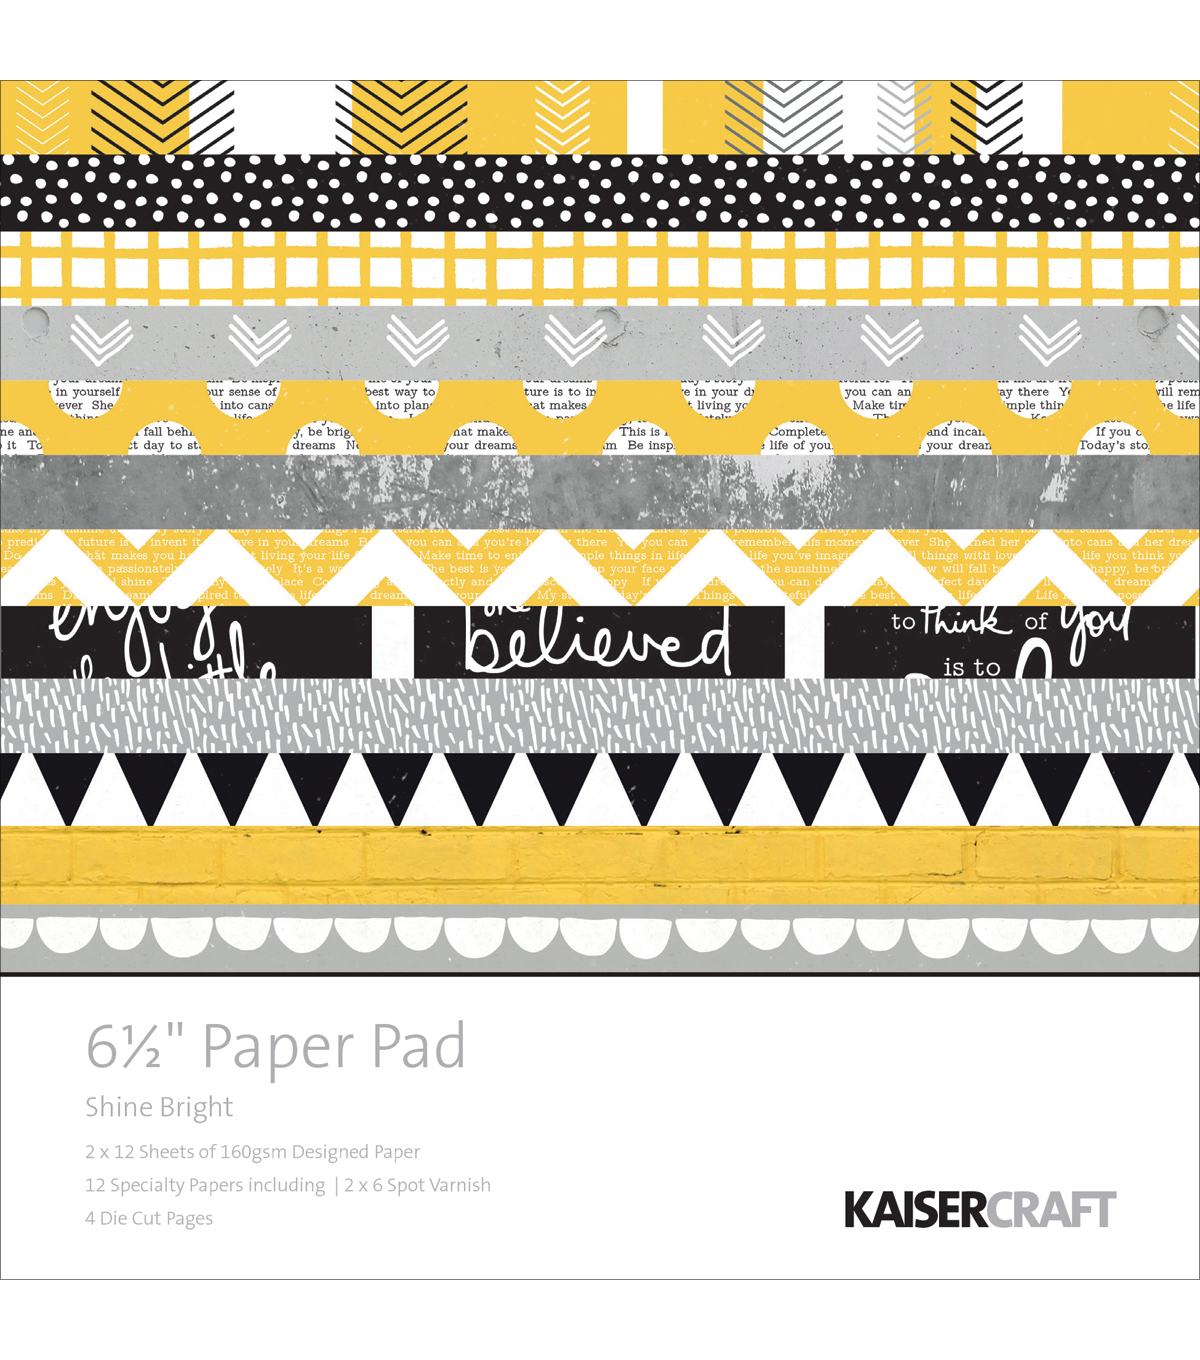 Kaisercraft Shine Bright Paper Pad